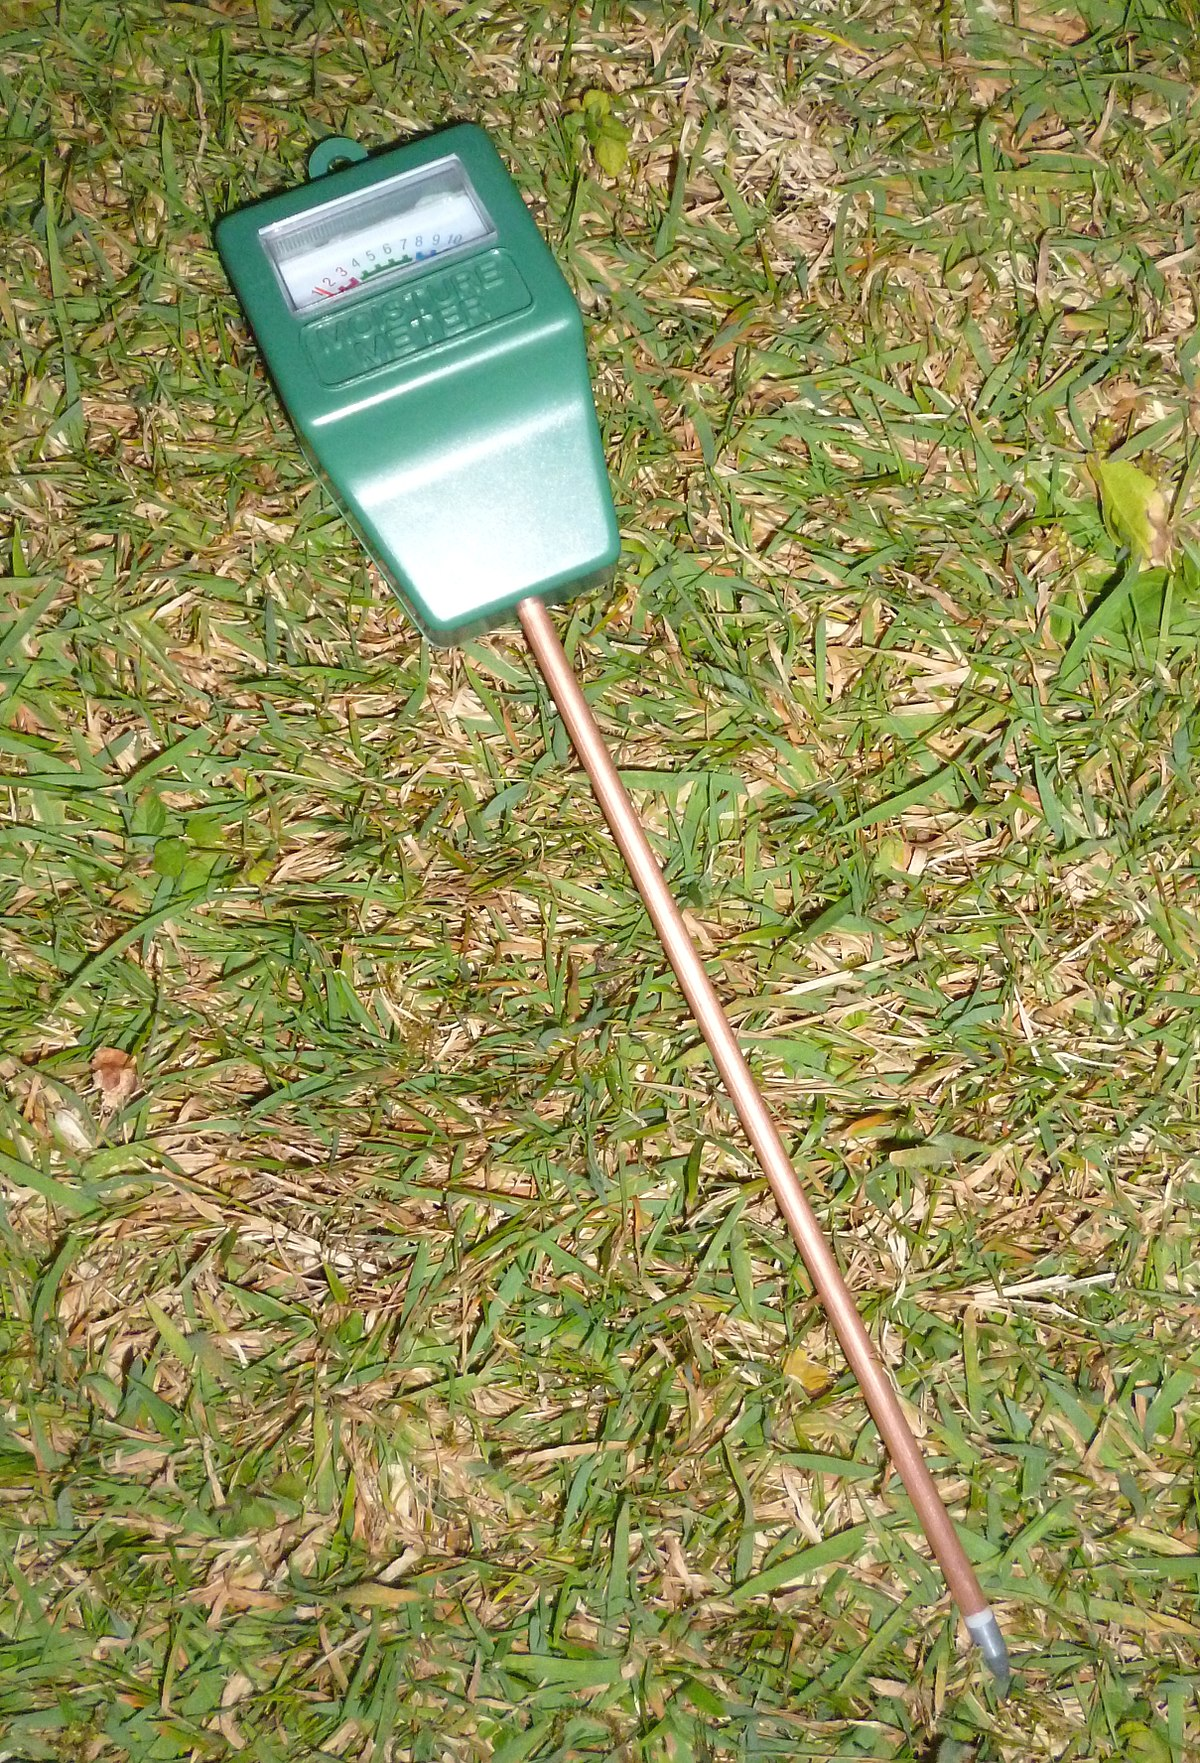 Soil moisture sensor wikipedia for Soil as a system